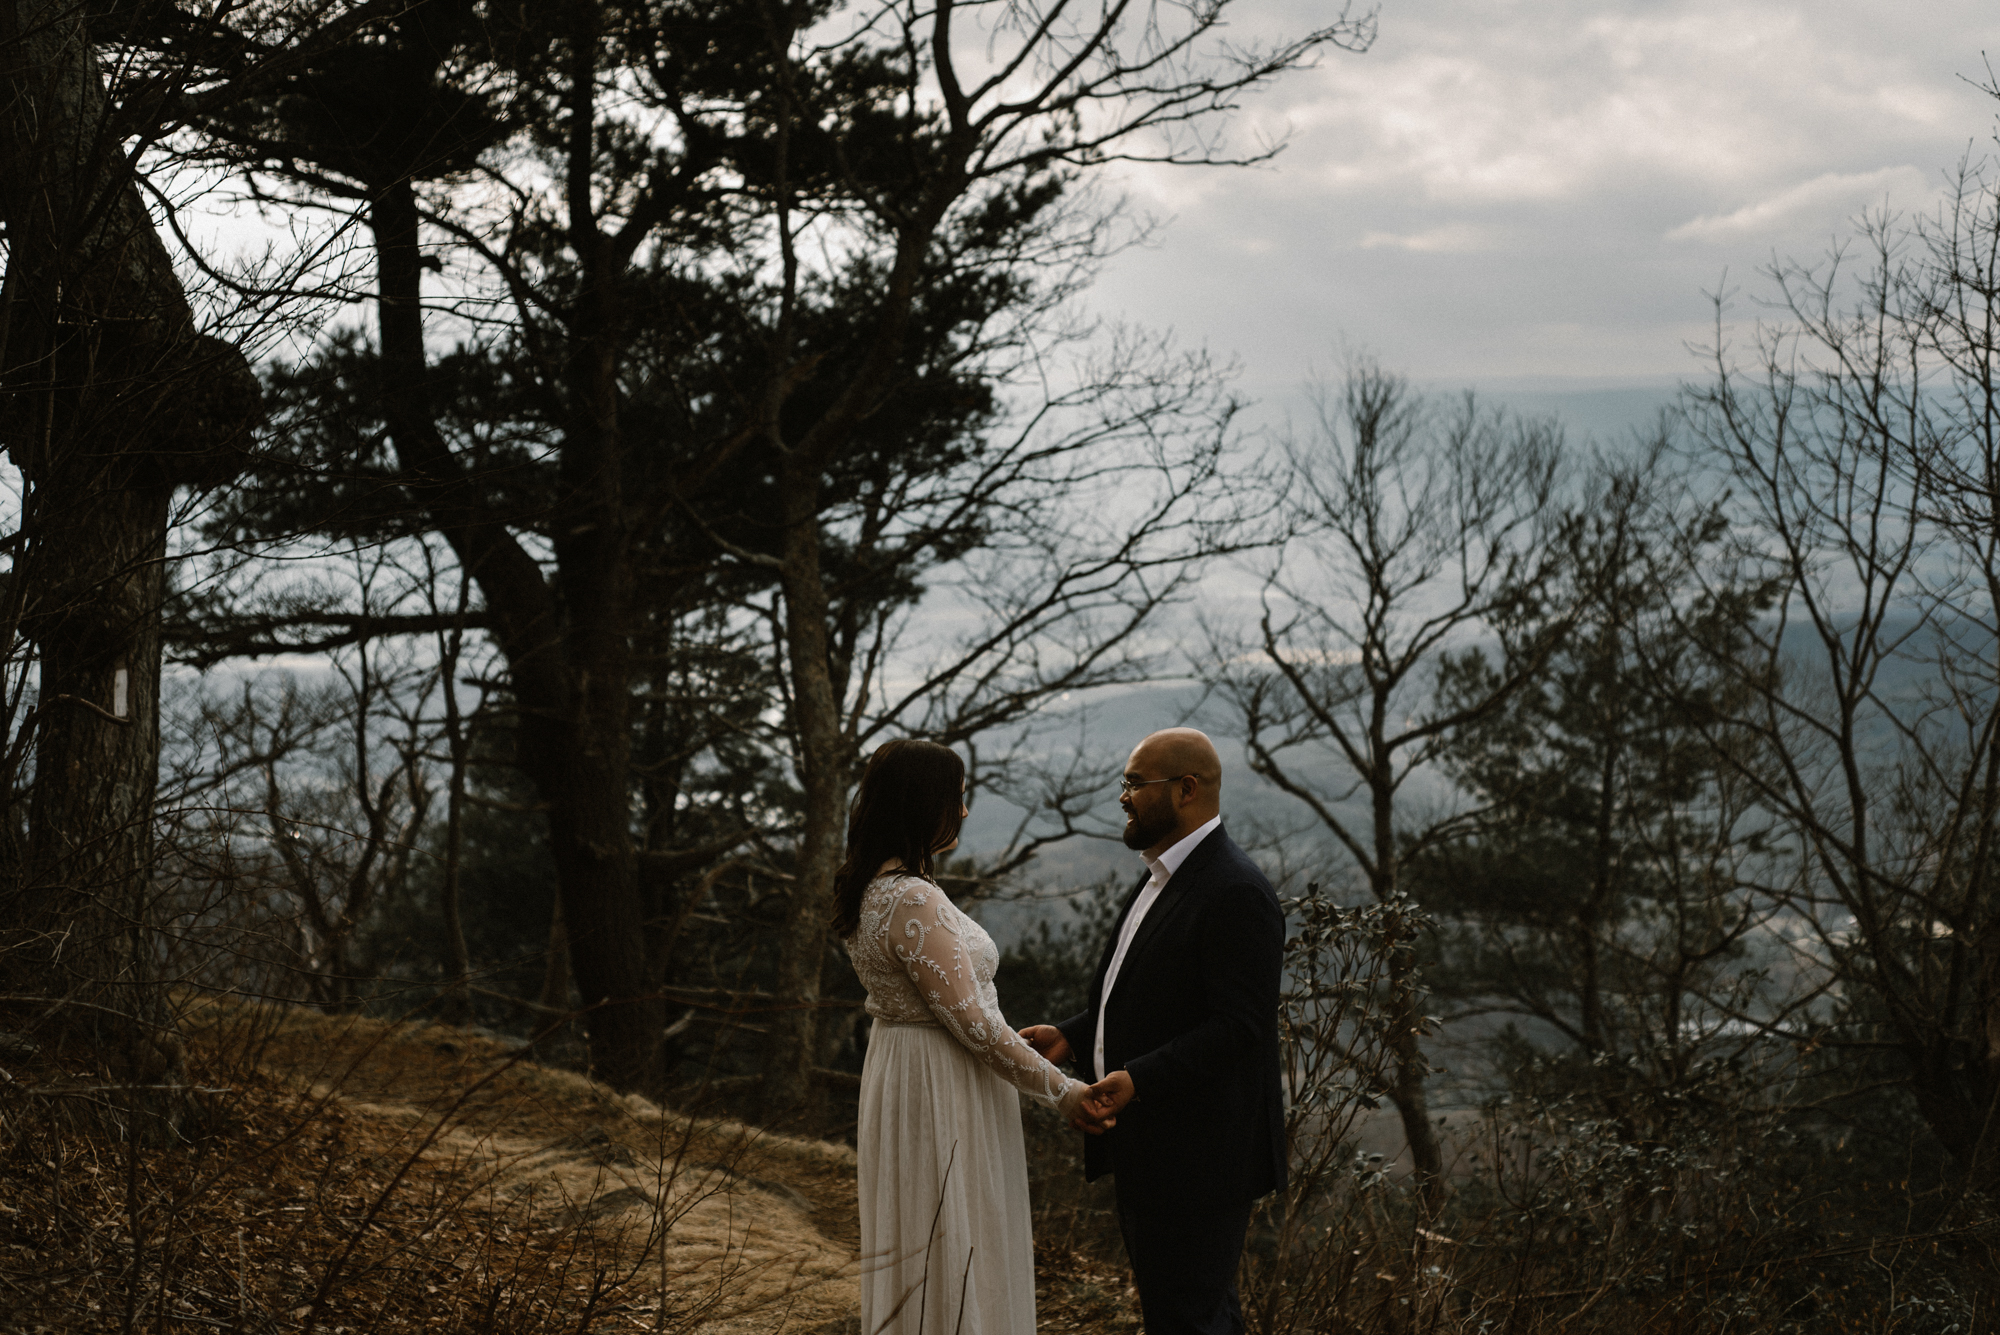 Emma and Jeddah - Intimate Luray Wedding - Shenandoah National Park Wedding - Adventure Elopement in Virginia - Shenandoah National Park Elopement_64.jpg